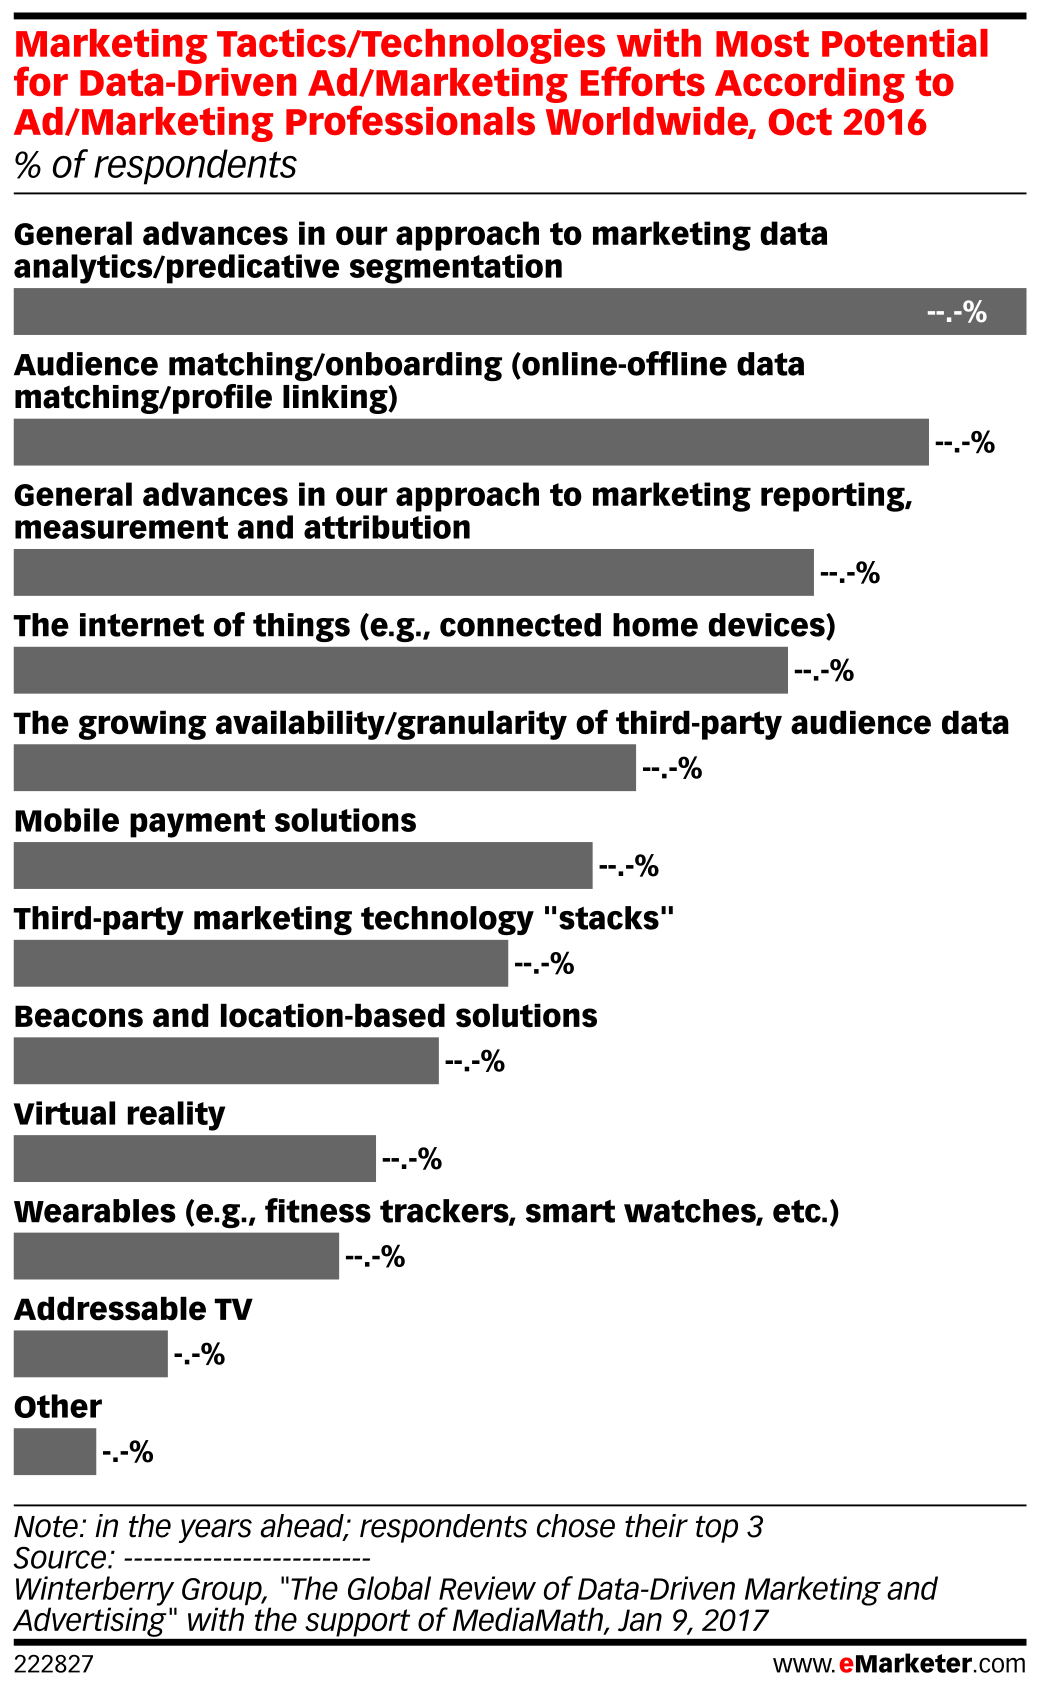 Marketing Tactics/Technologies with Most Potential for Data-Driven Ad/Marketing Efforts According to Ad/Marketing Professionals Worldwide, Oct 2016 (% of respondents)